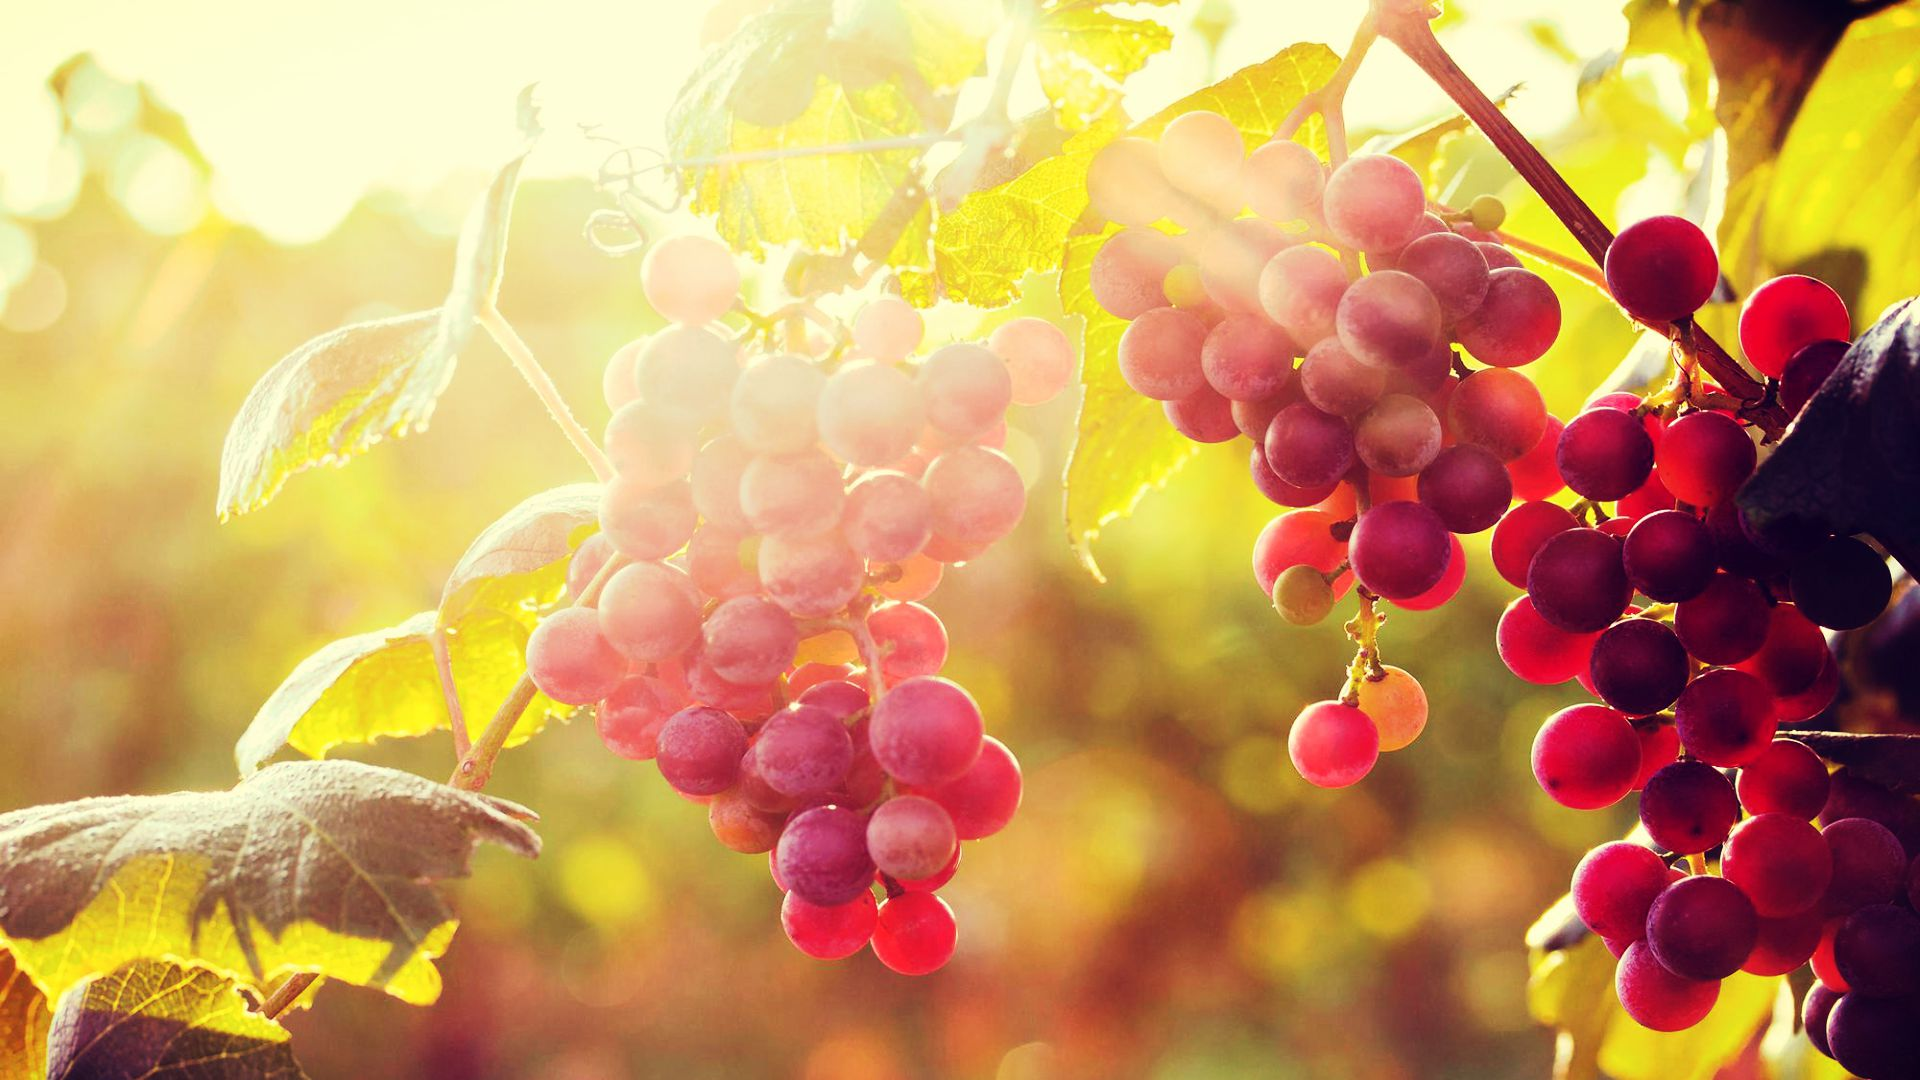 Sun With Grapes Wallpaper Android Wallpaper WallpaperLepi 1920x1080